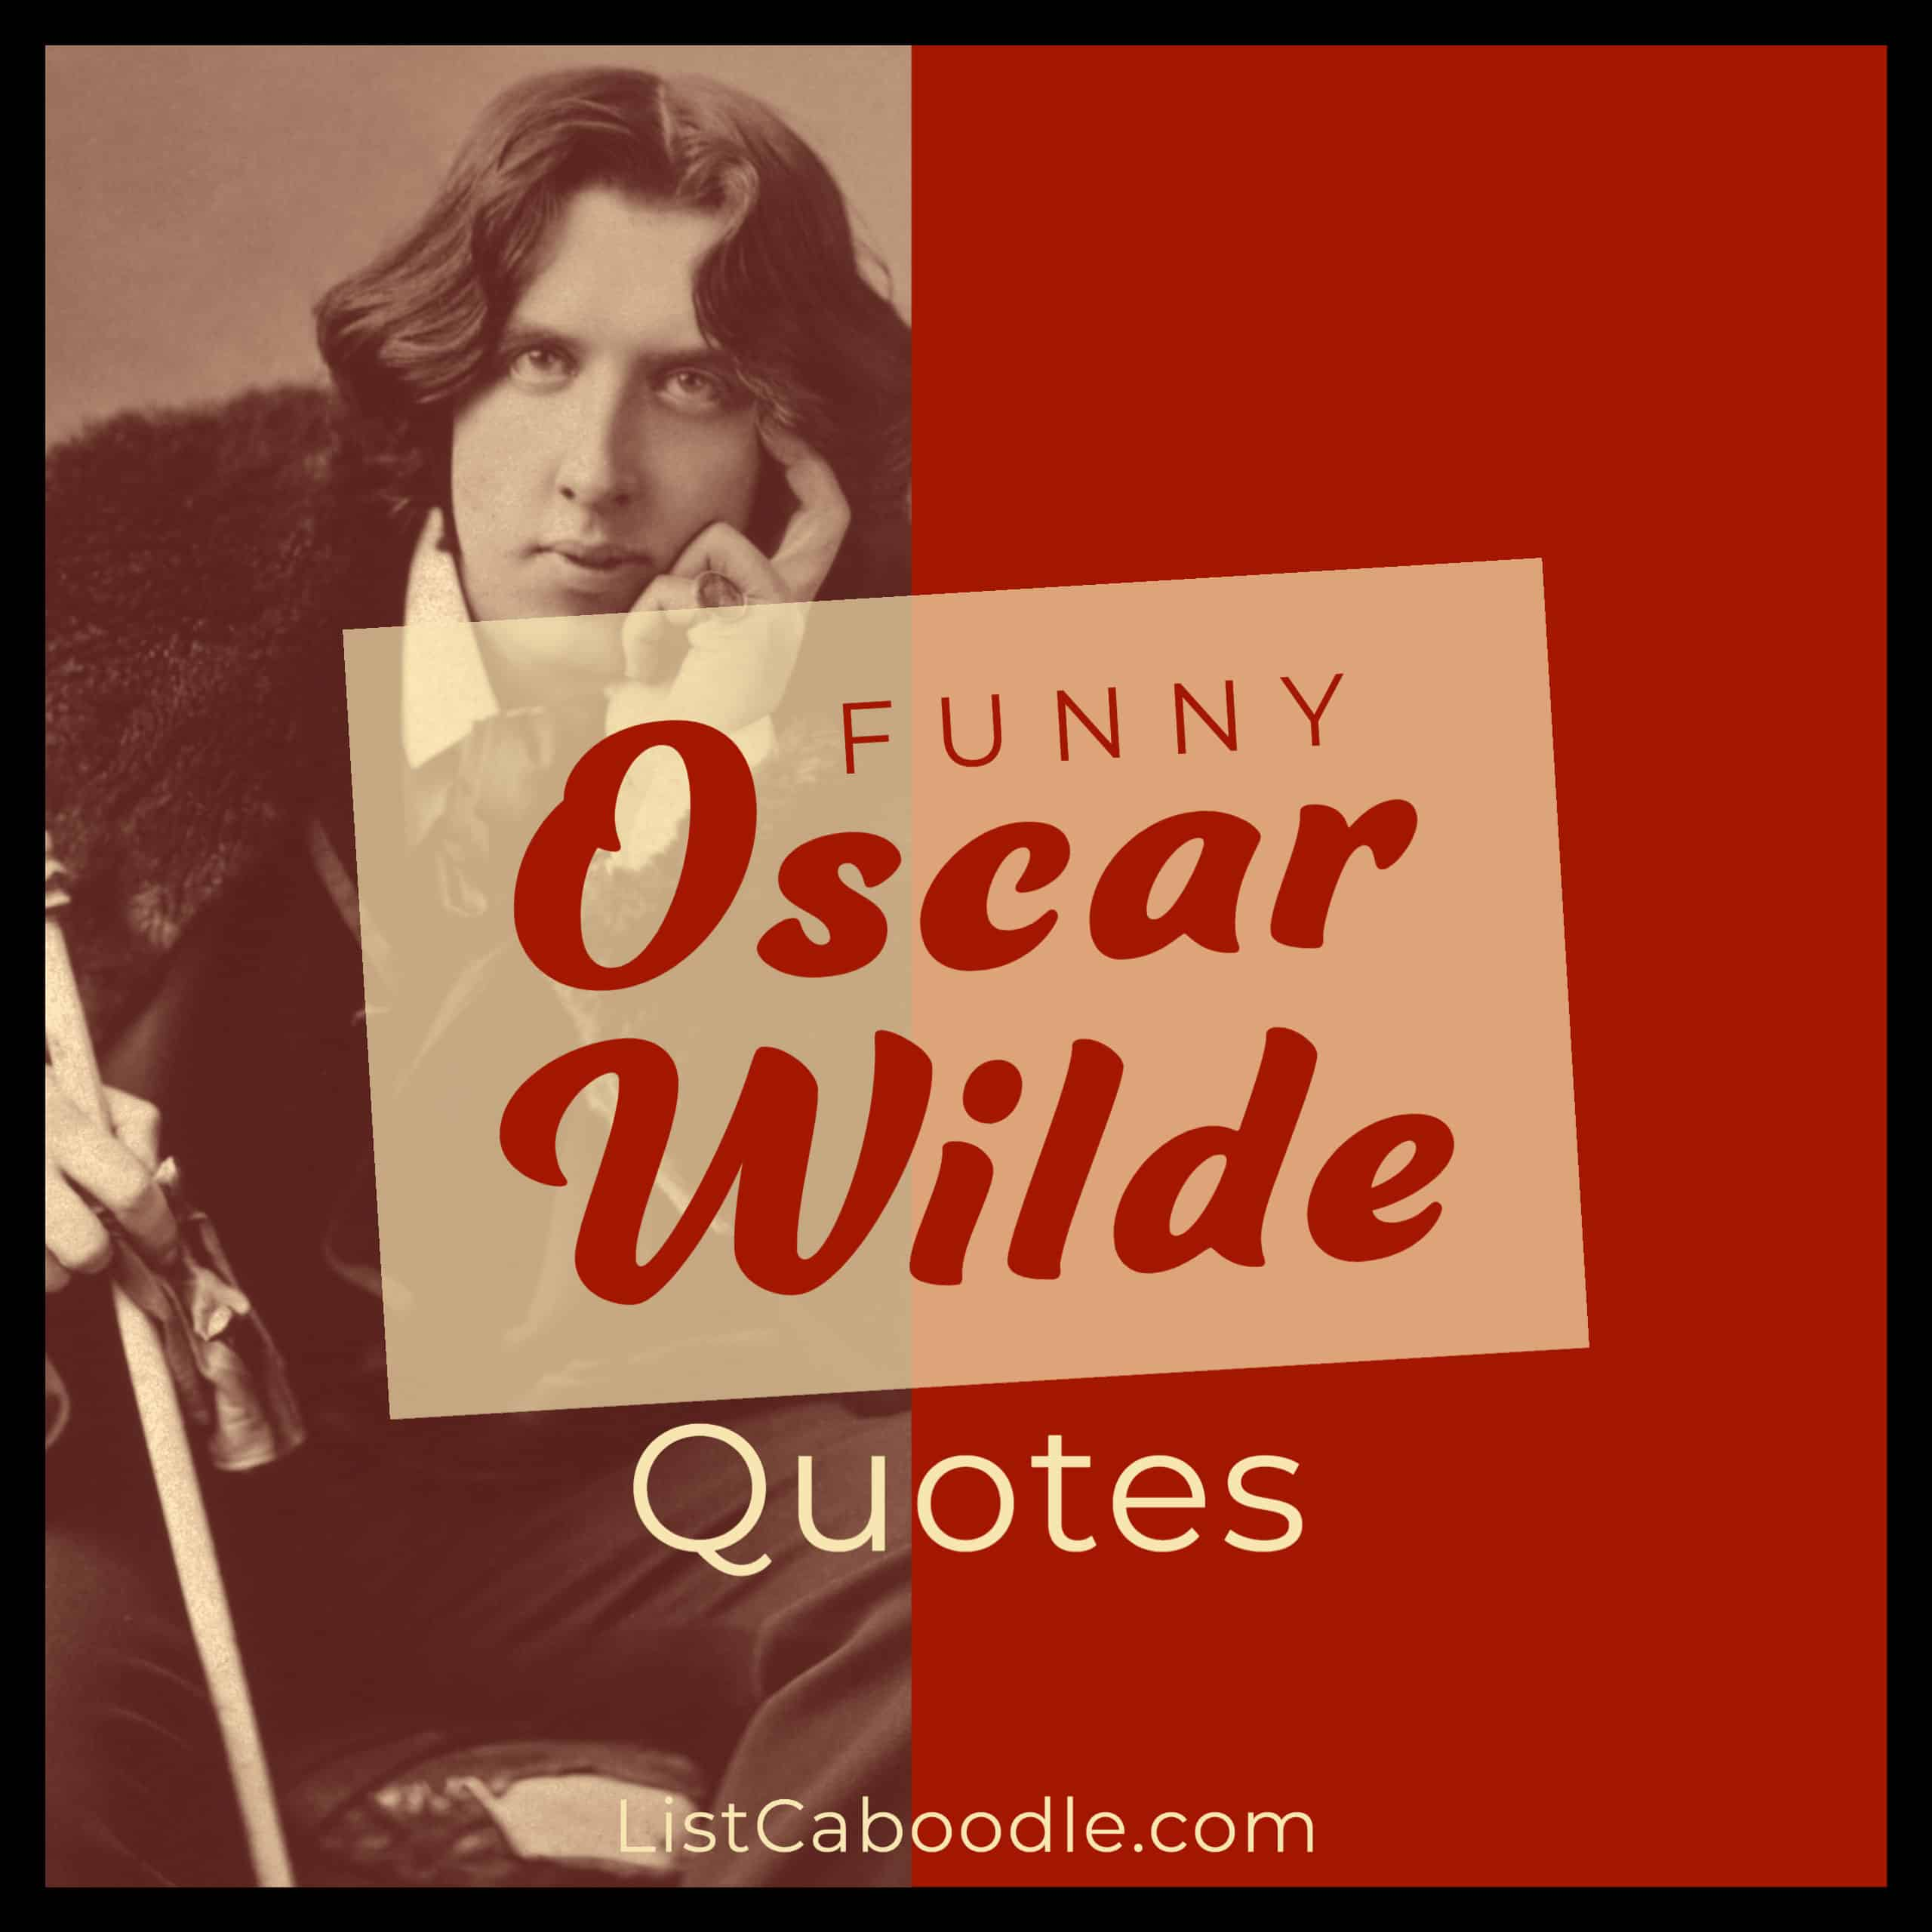 Funny Oscar Wilde quotes image